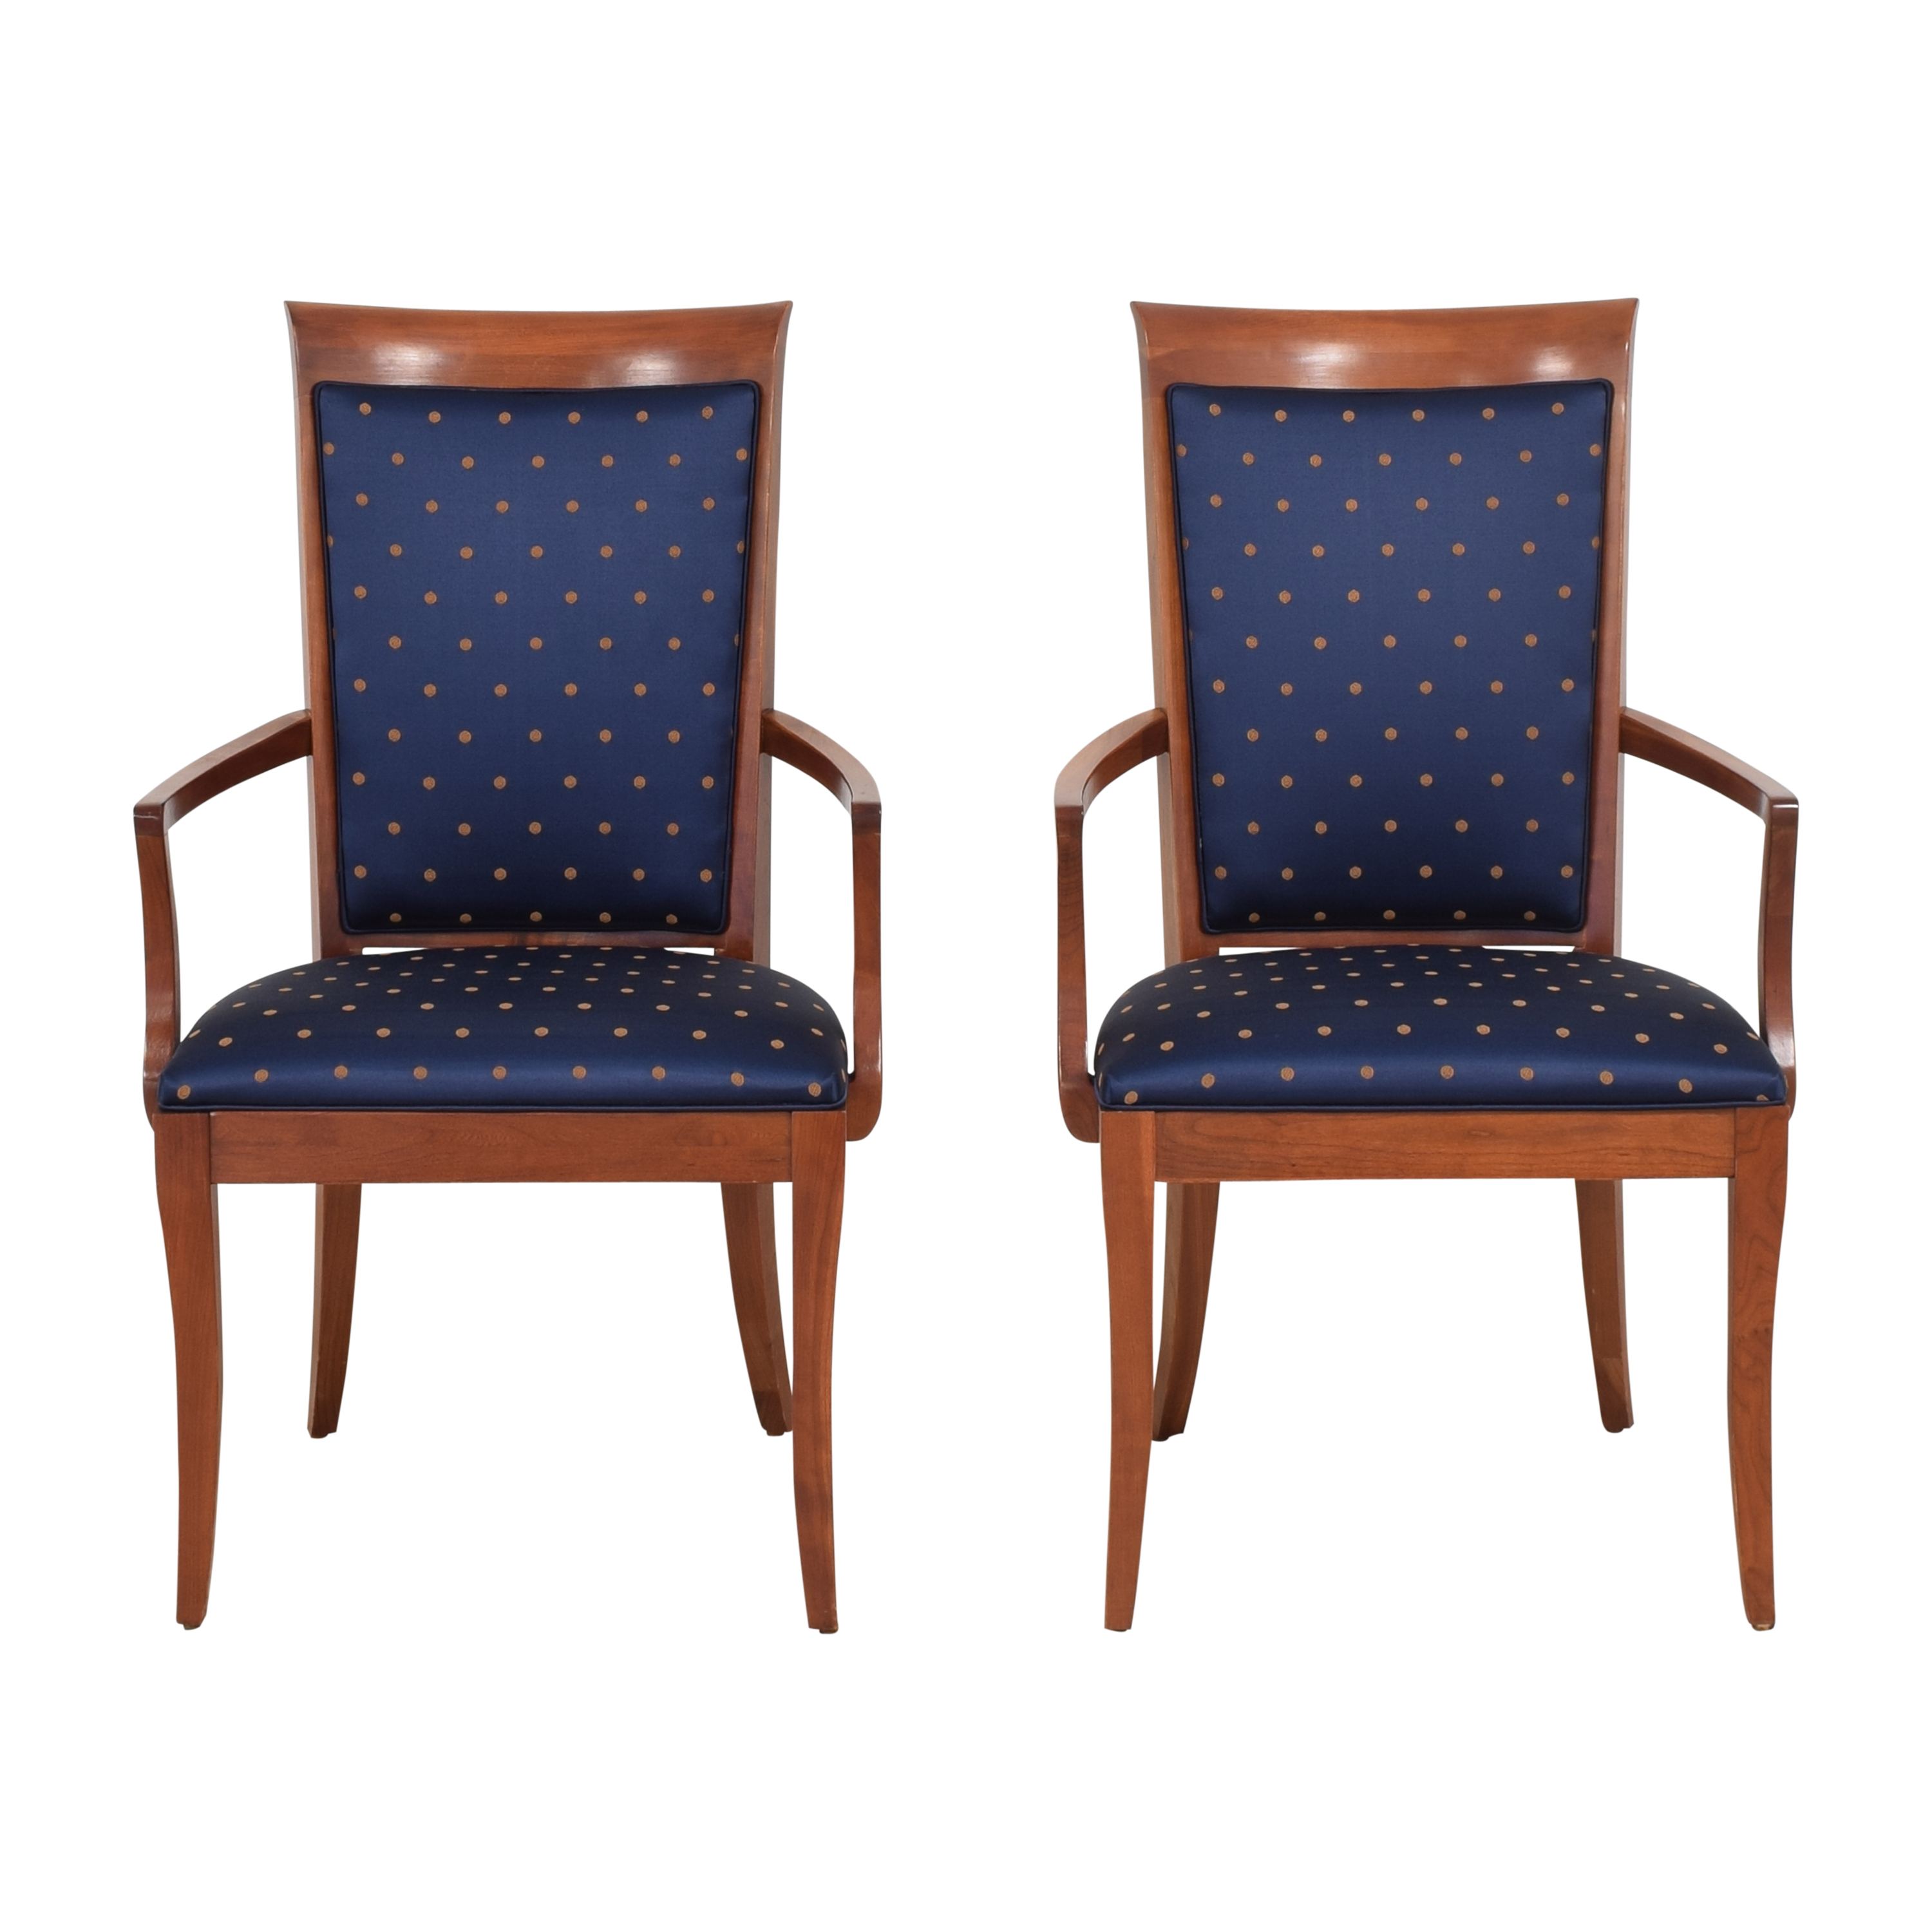 Ethan Allen Ethan Allen Medallion Dining Arm Chairs Dining Chairs